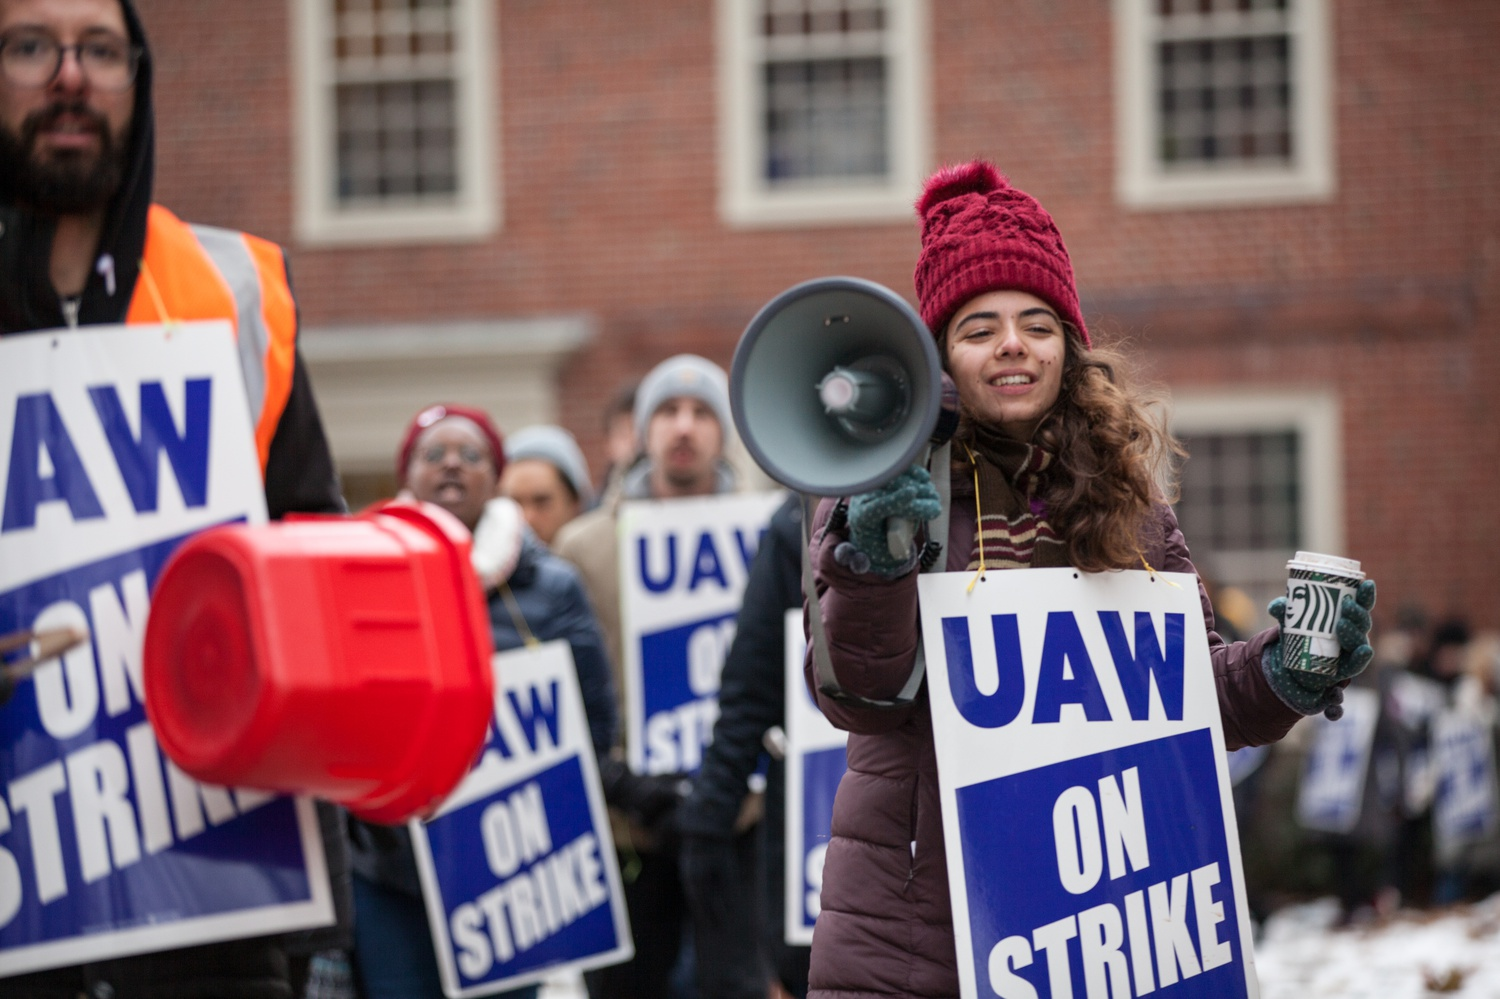 In December 2019, HGSU-UAW went on strike for four weeks in a bid to secure its first contract, ultimately moving to mediation and ratifying a one-year contract in July 2020.